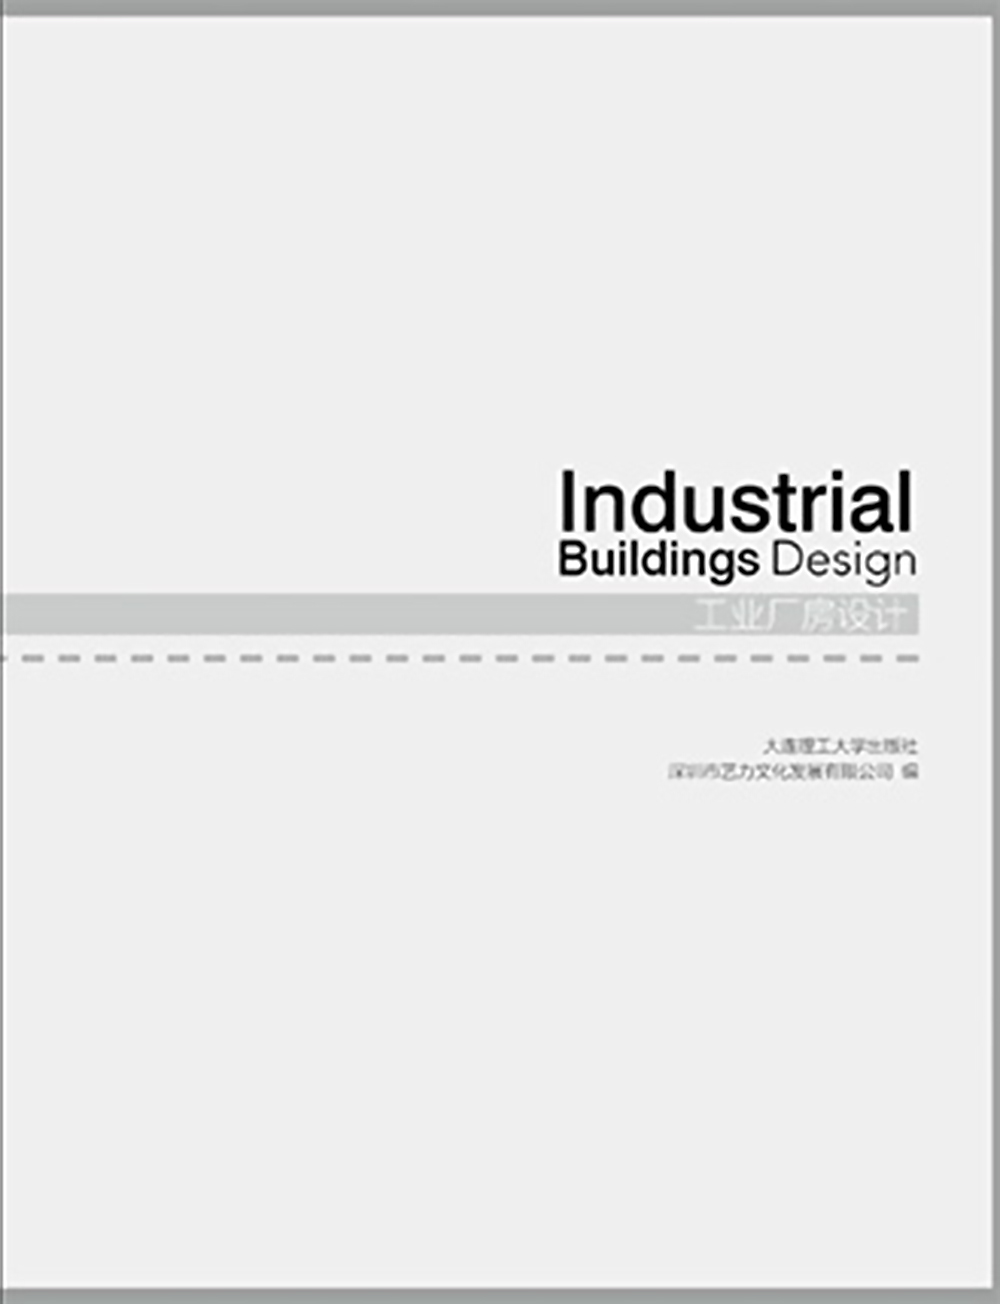 Industrial Buildings Design